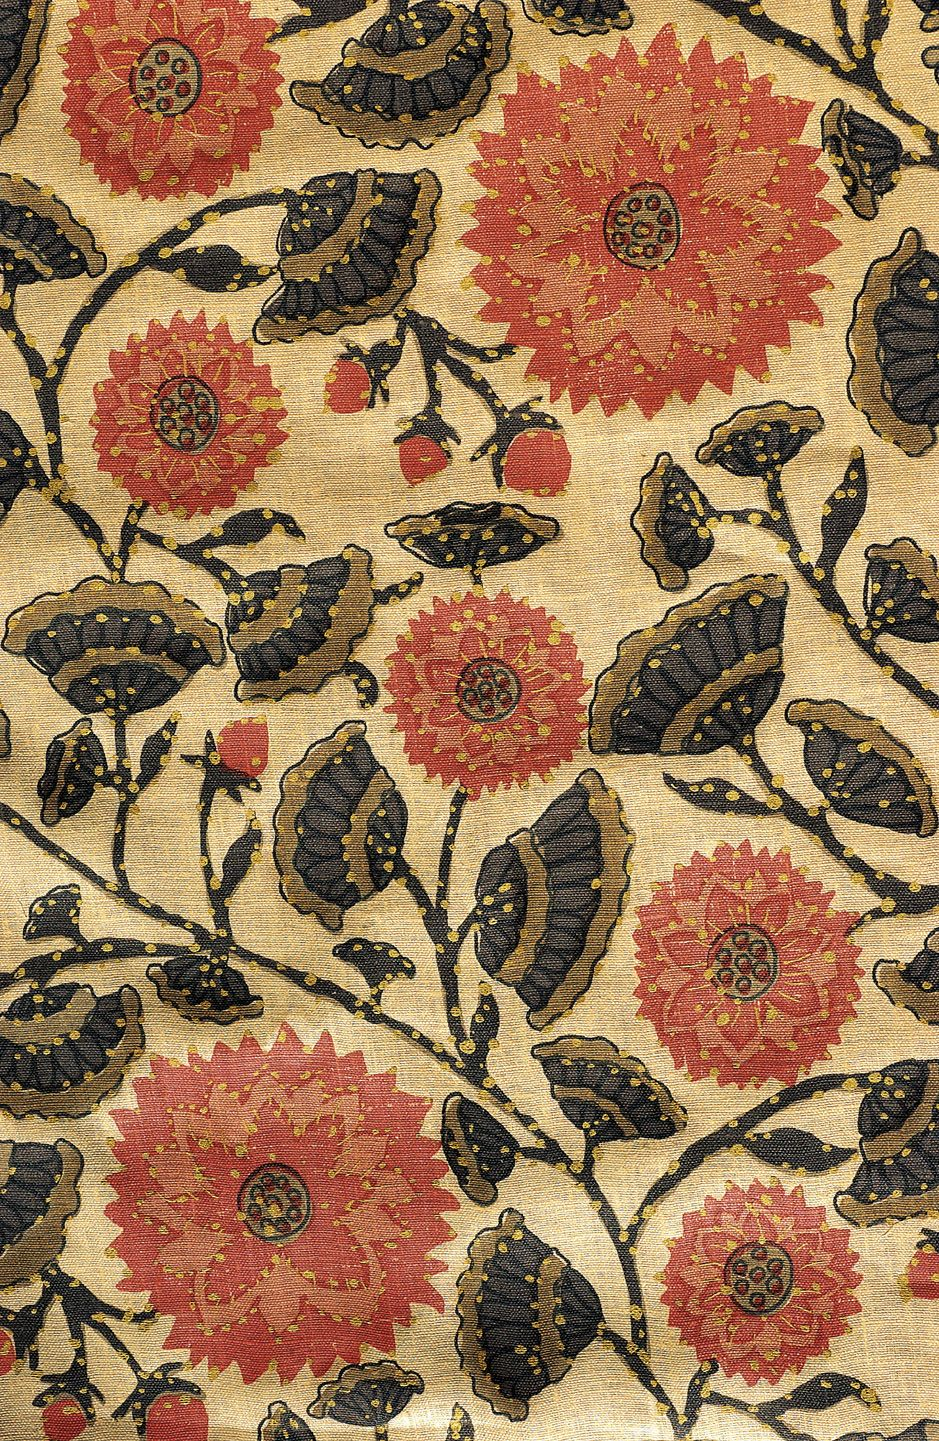 Indian Flower Toile Patterns Of India Textile Patterns